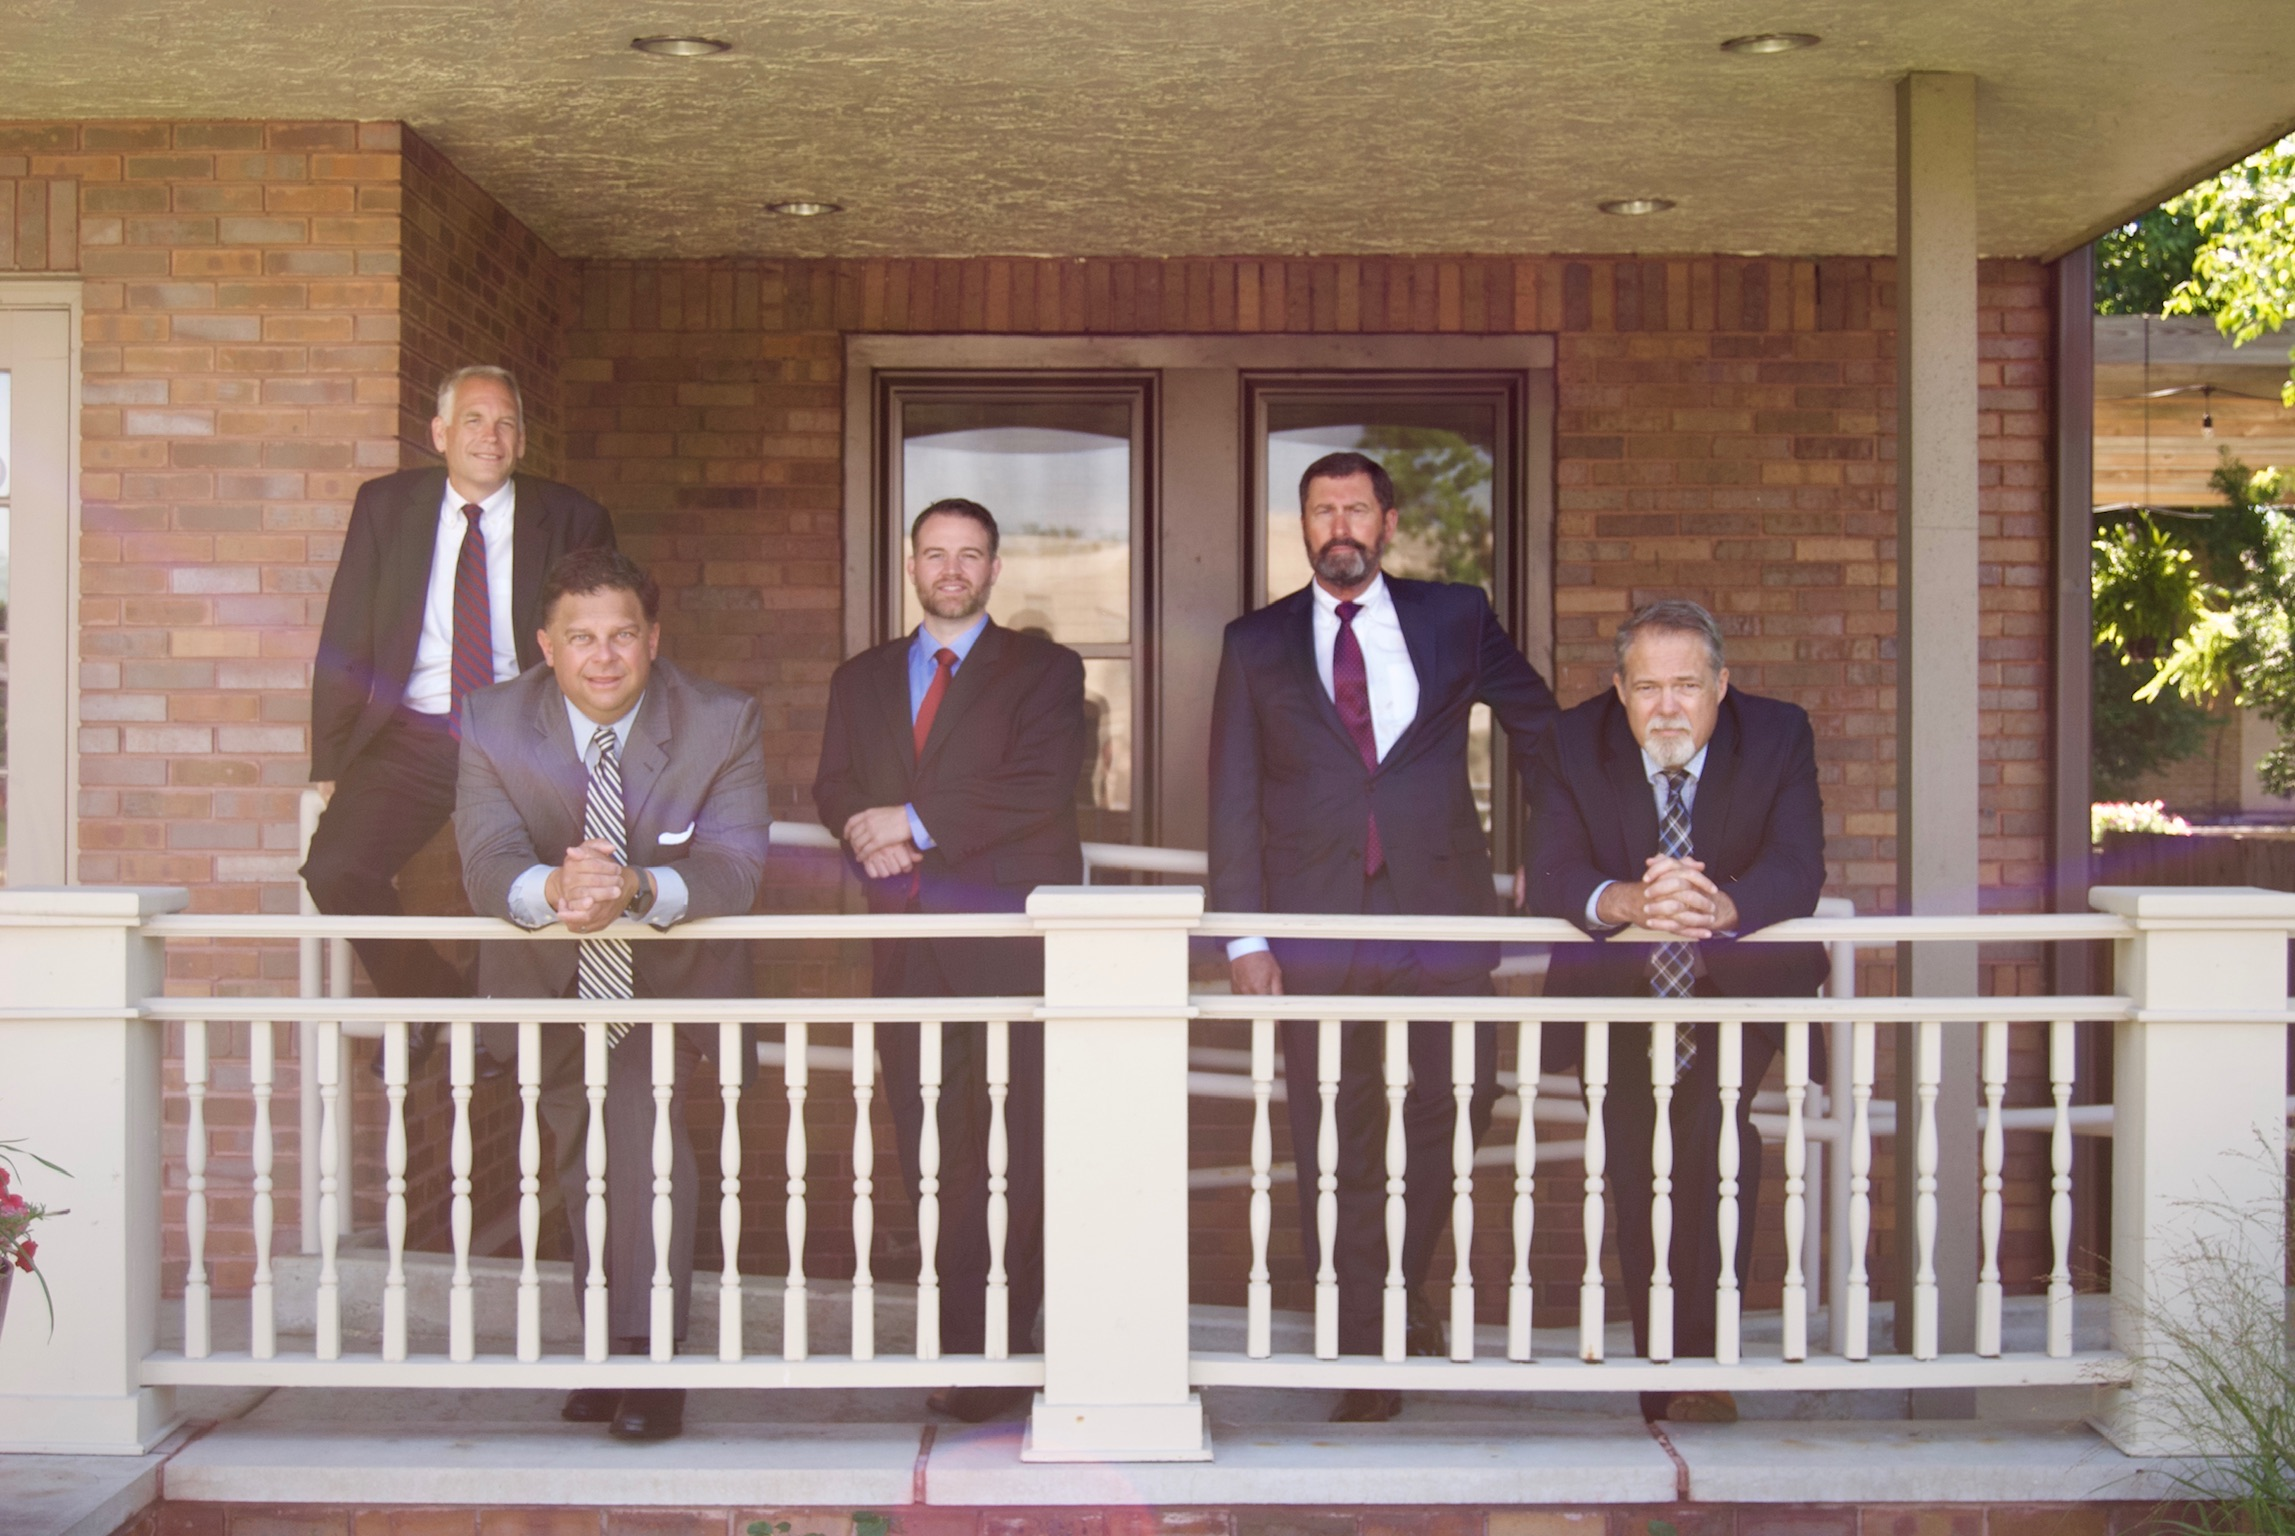 Goodin Abernathy Partners on Front Porch of Office - Indanapolis Attorney Firm